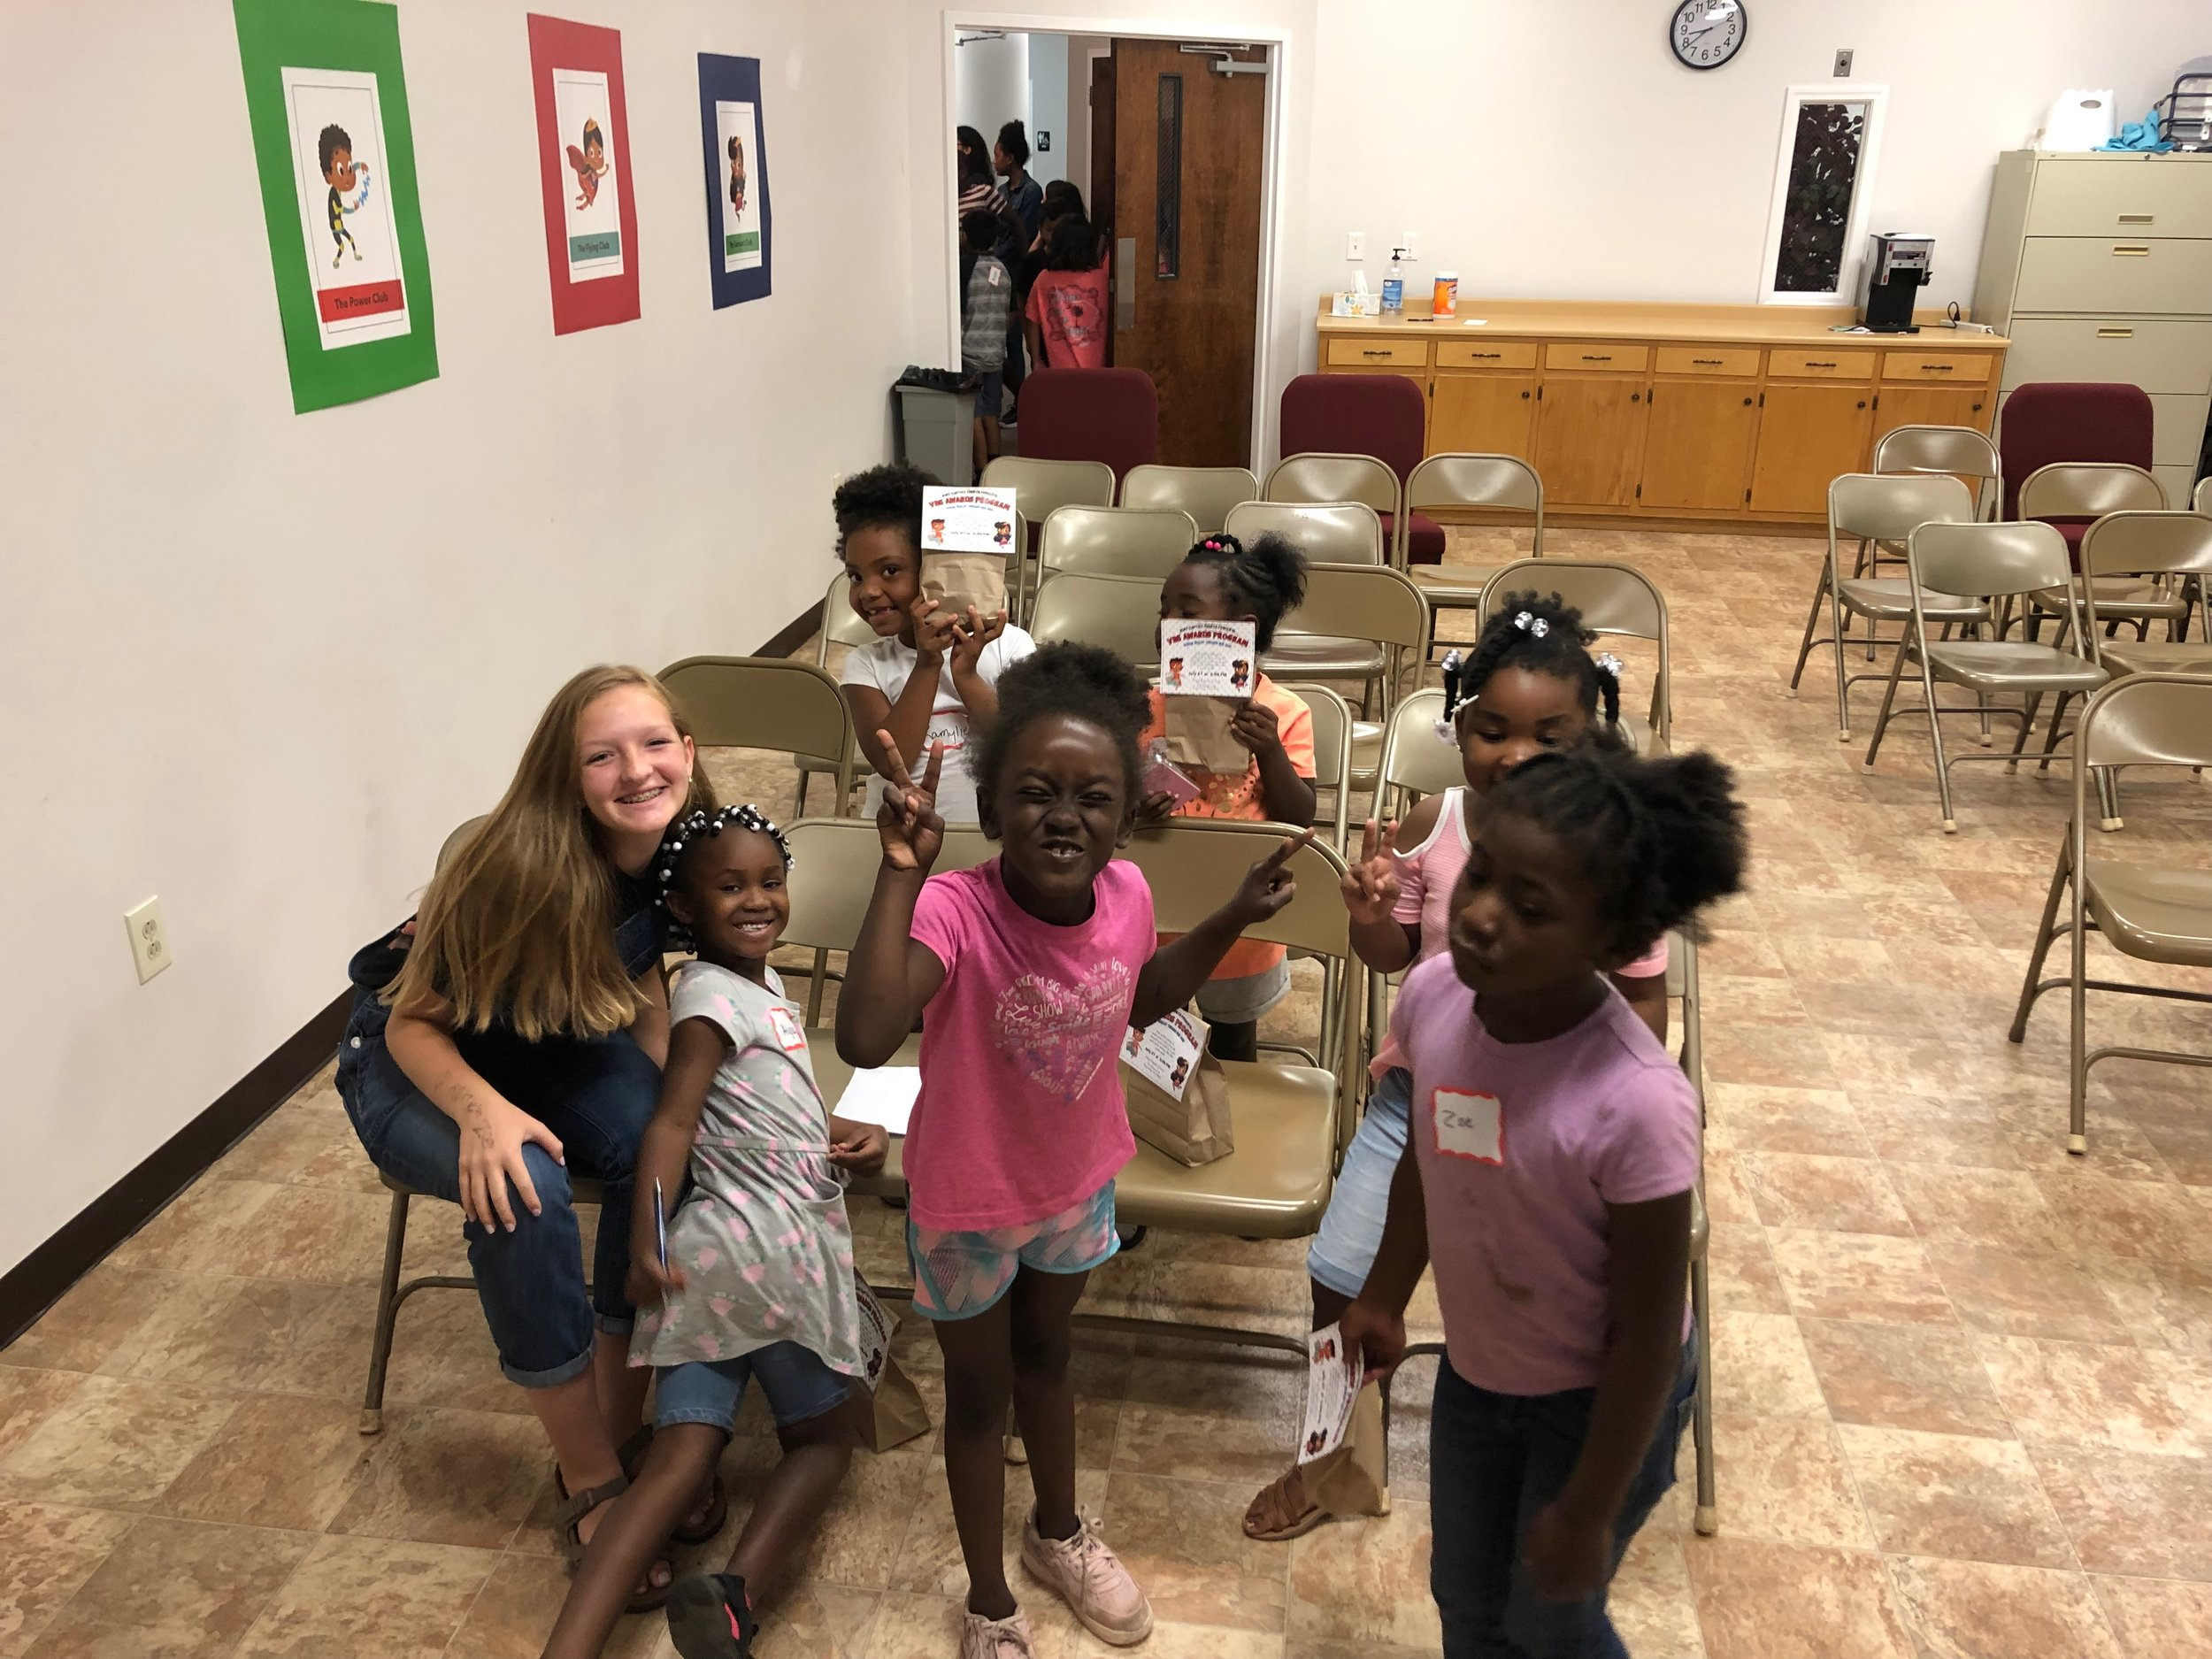 Morningside Baptist Church Outreach Volunteers for VBS at Hope Baptist Church Nicholtown Greenville SC - 8.JPEG